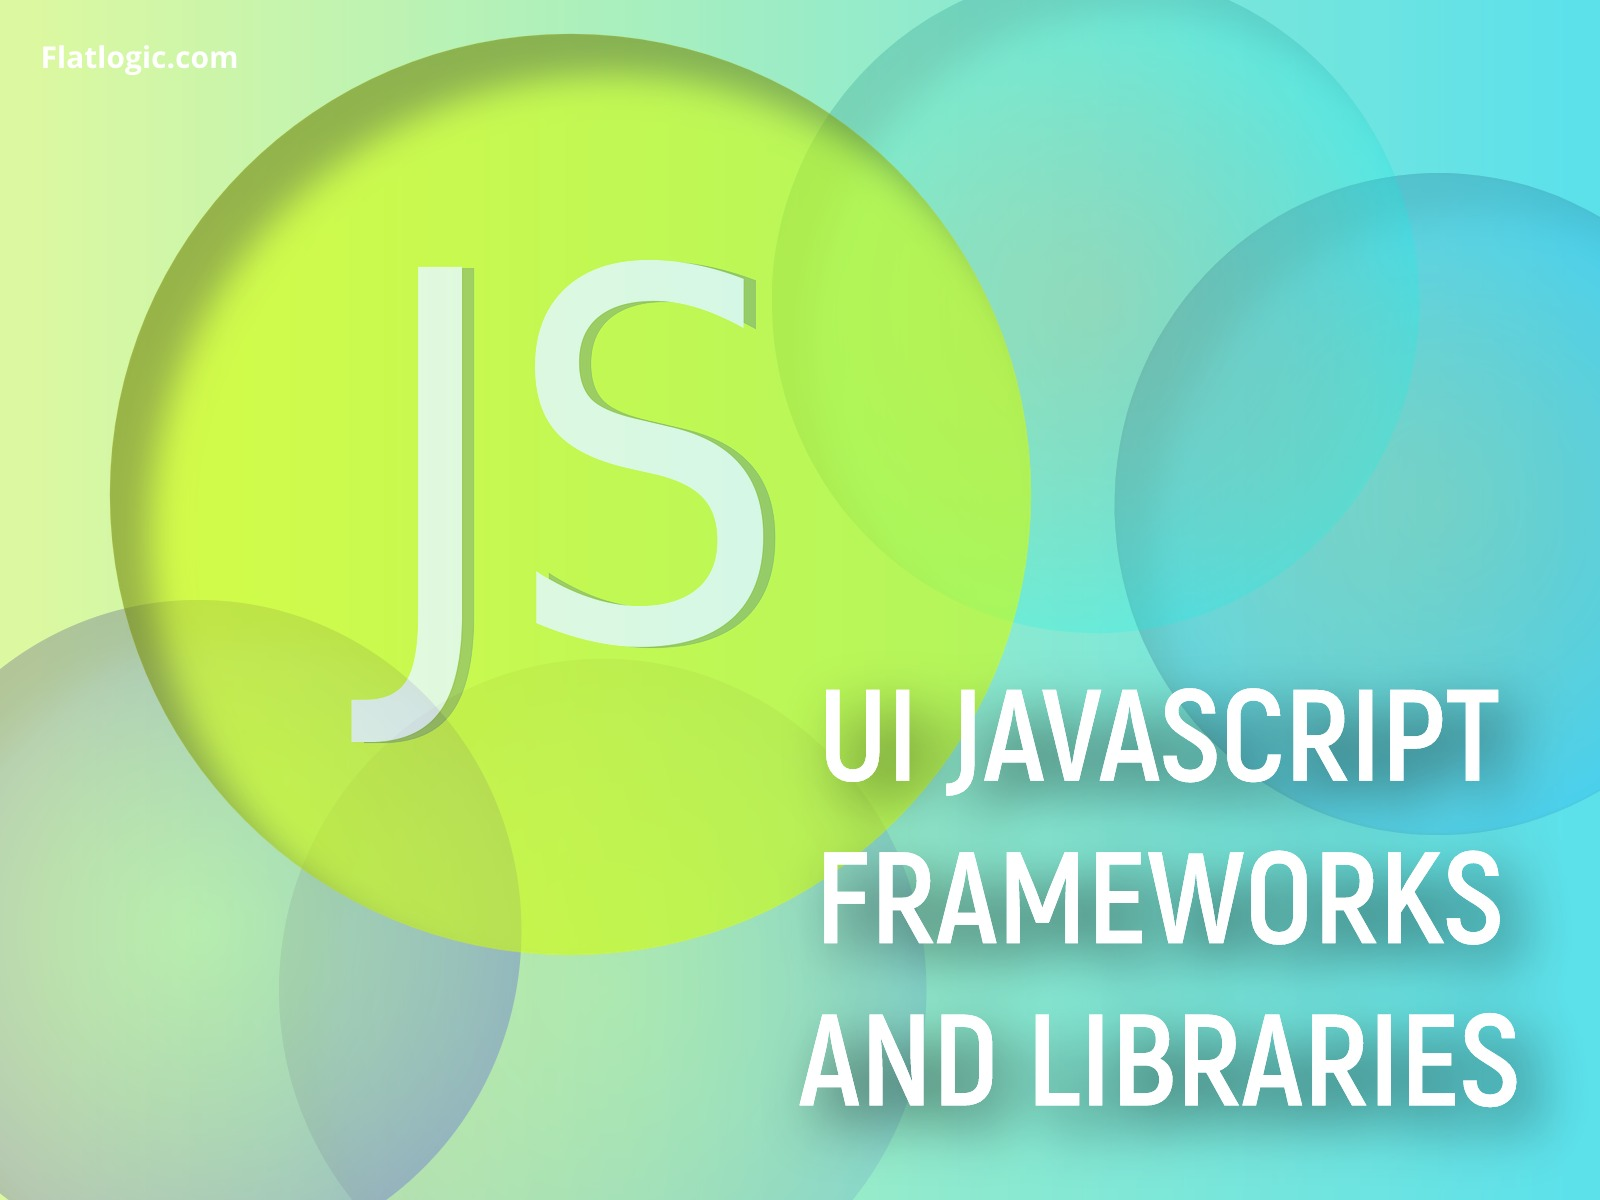 Web and UI JavaScript Frameworks and Libraries